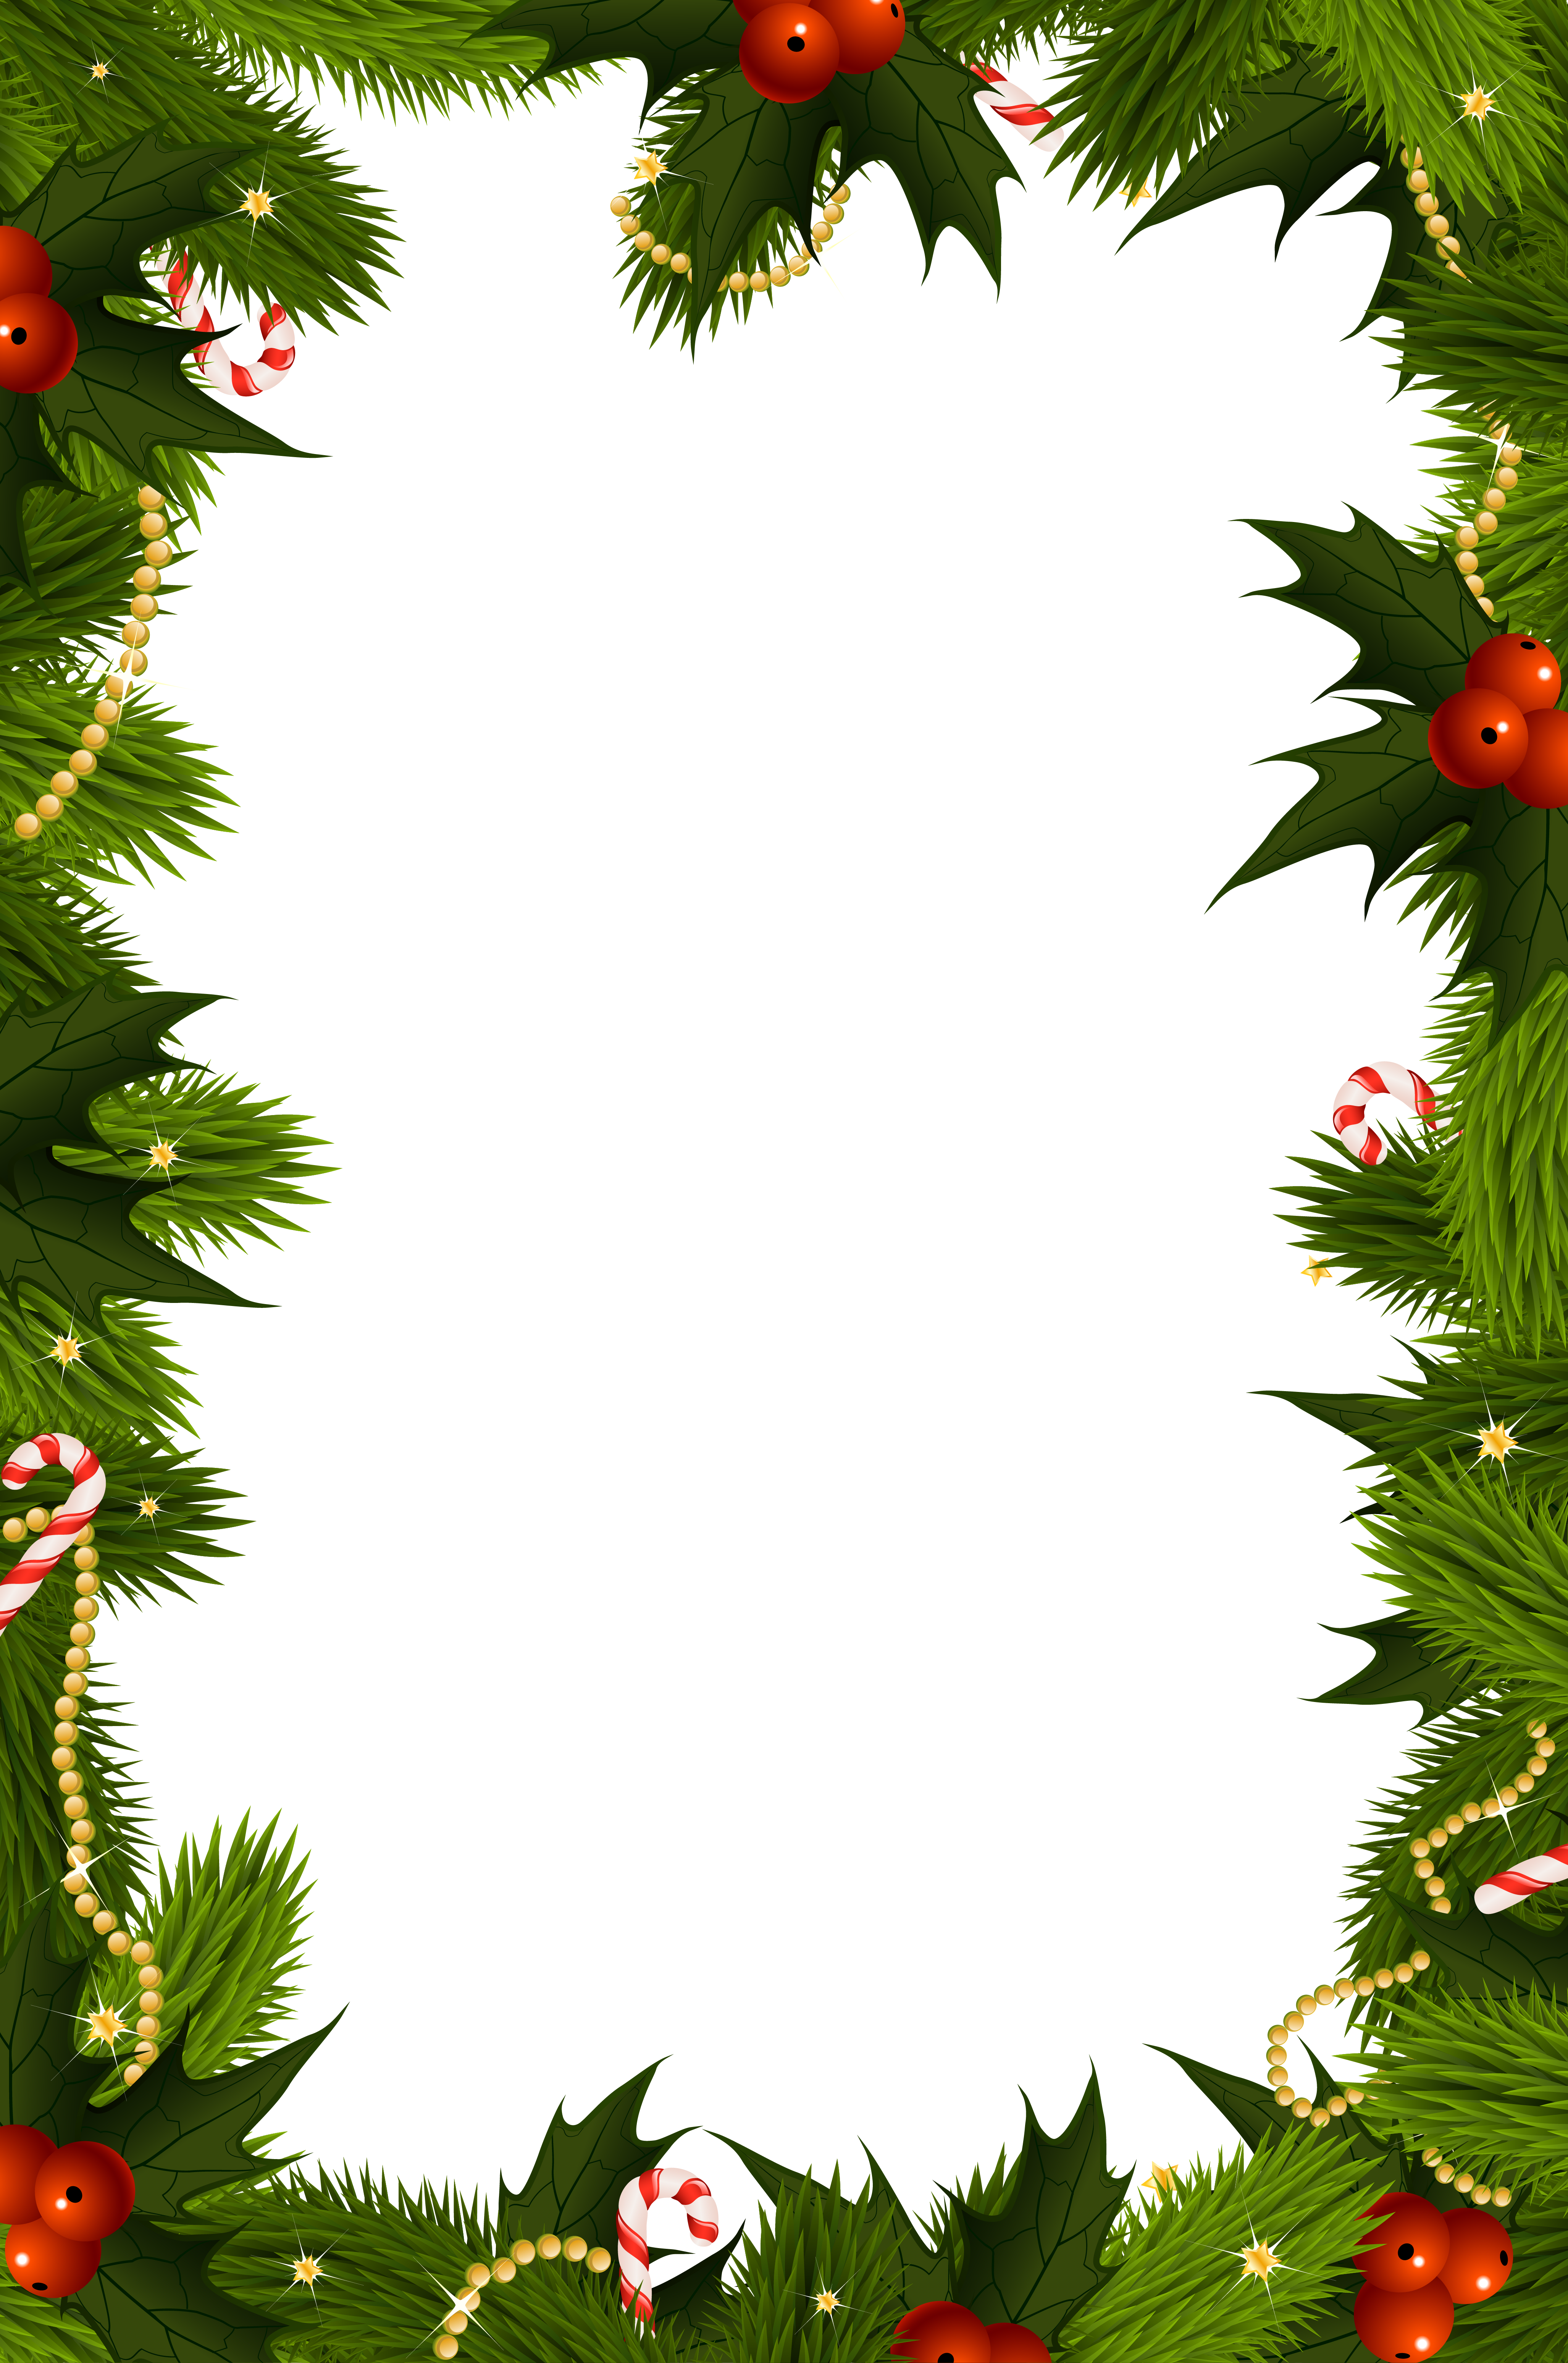 vector royalty free library Christmas clipart borders free. Transparent png border frame